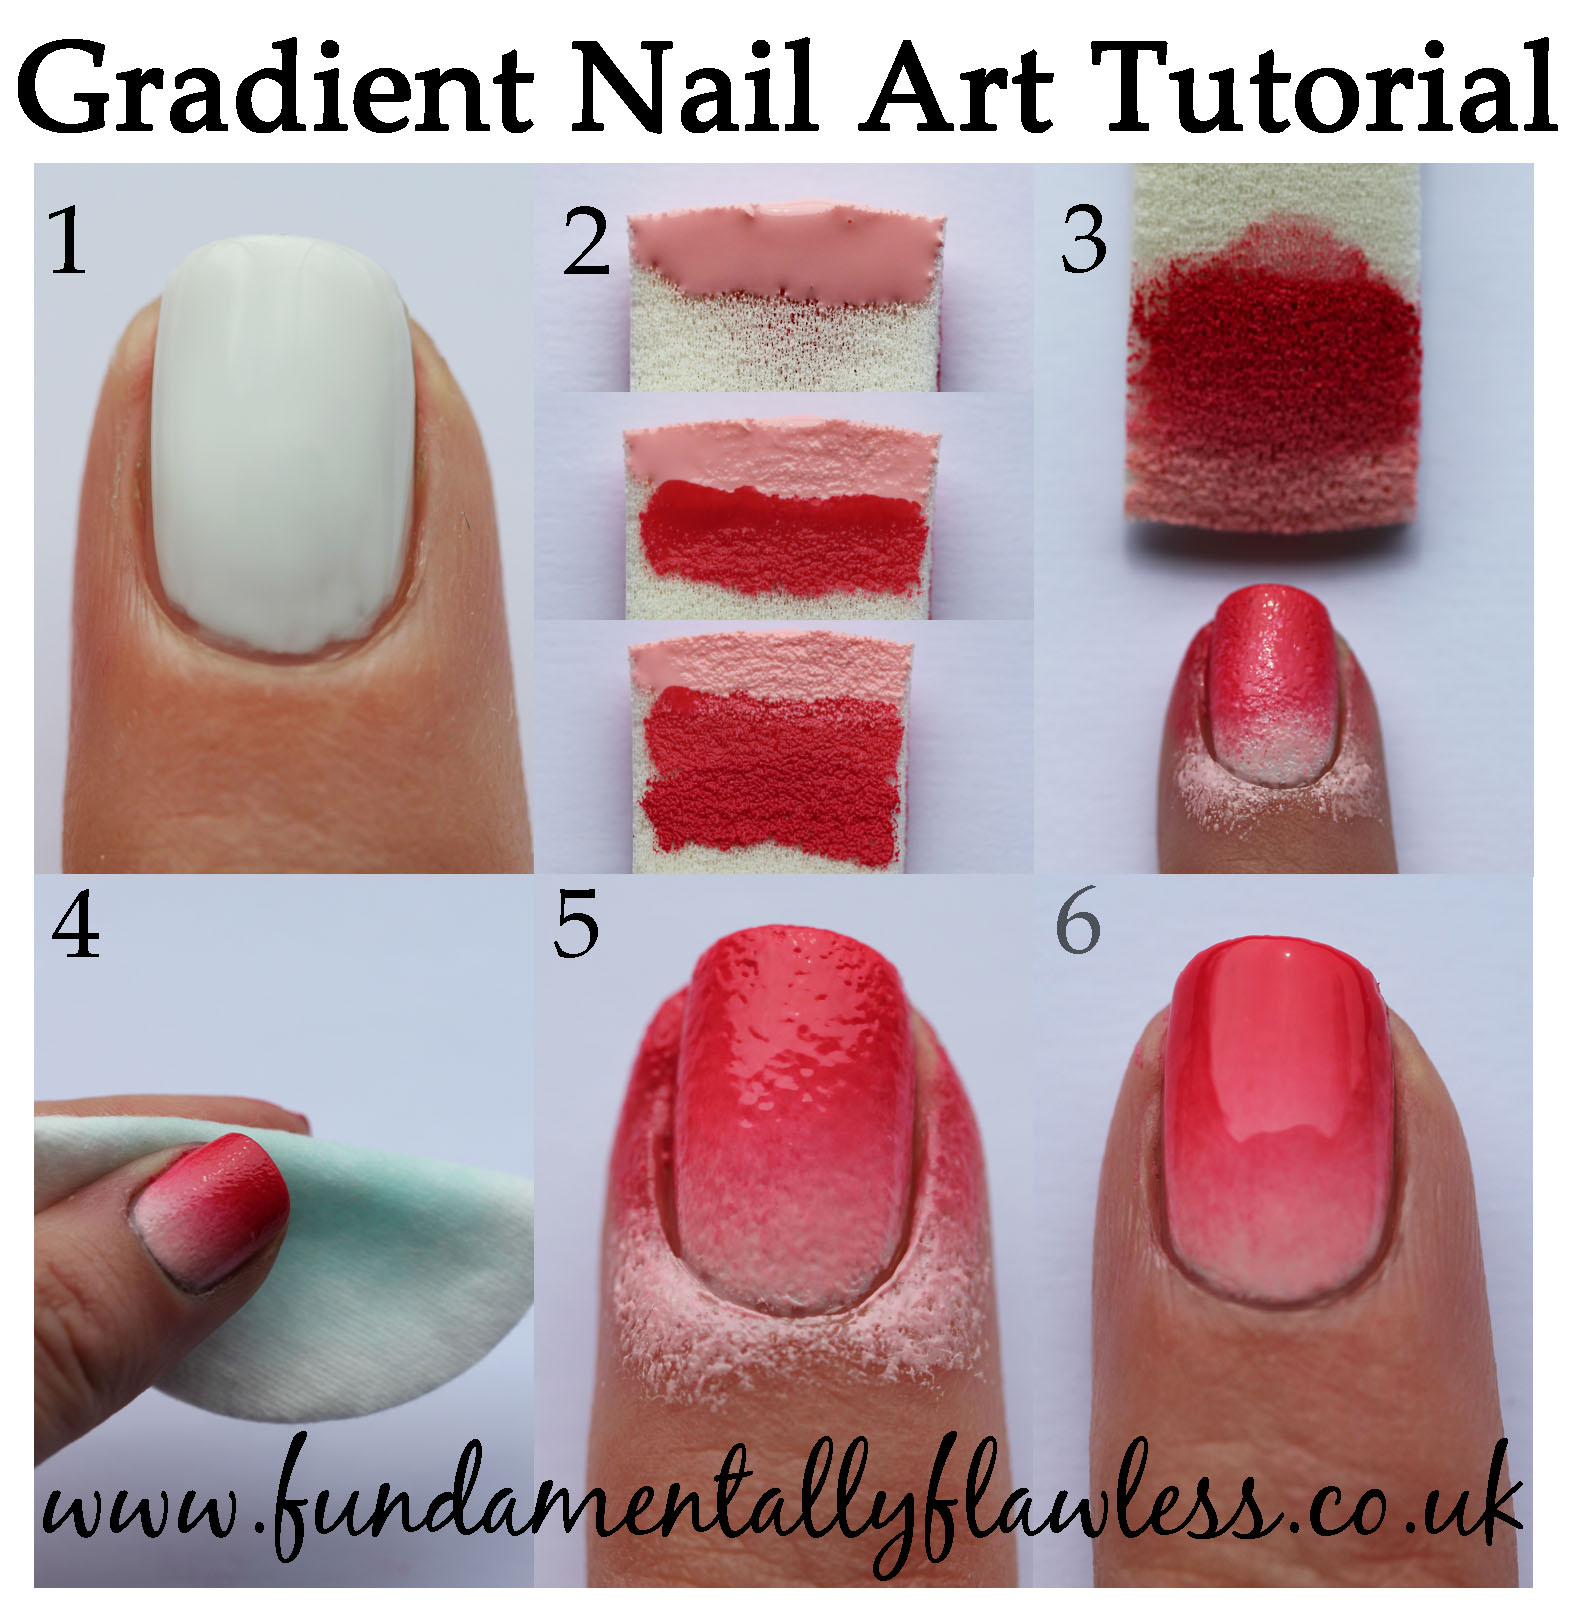 Fundamentally Flawless Grant Nails Tutorial